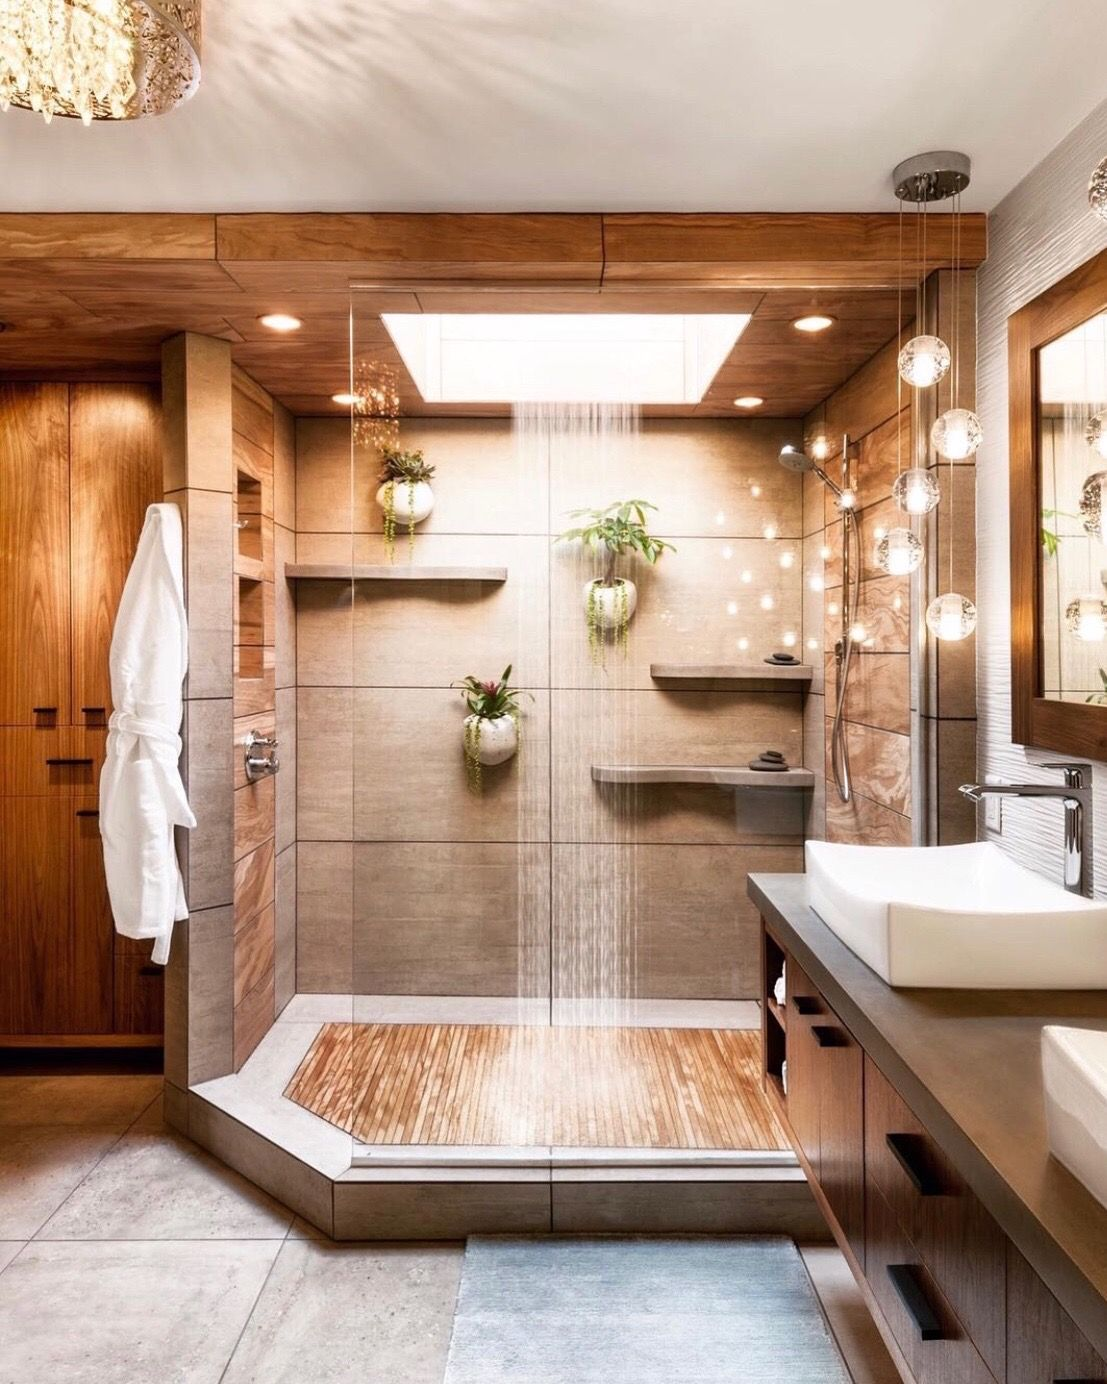 impressive shower with skylight bathroom inspiration on home inspirations this year the perfect dream bathrooms diy bathroom ideas id=49493